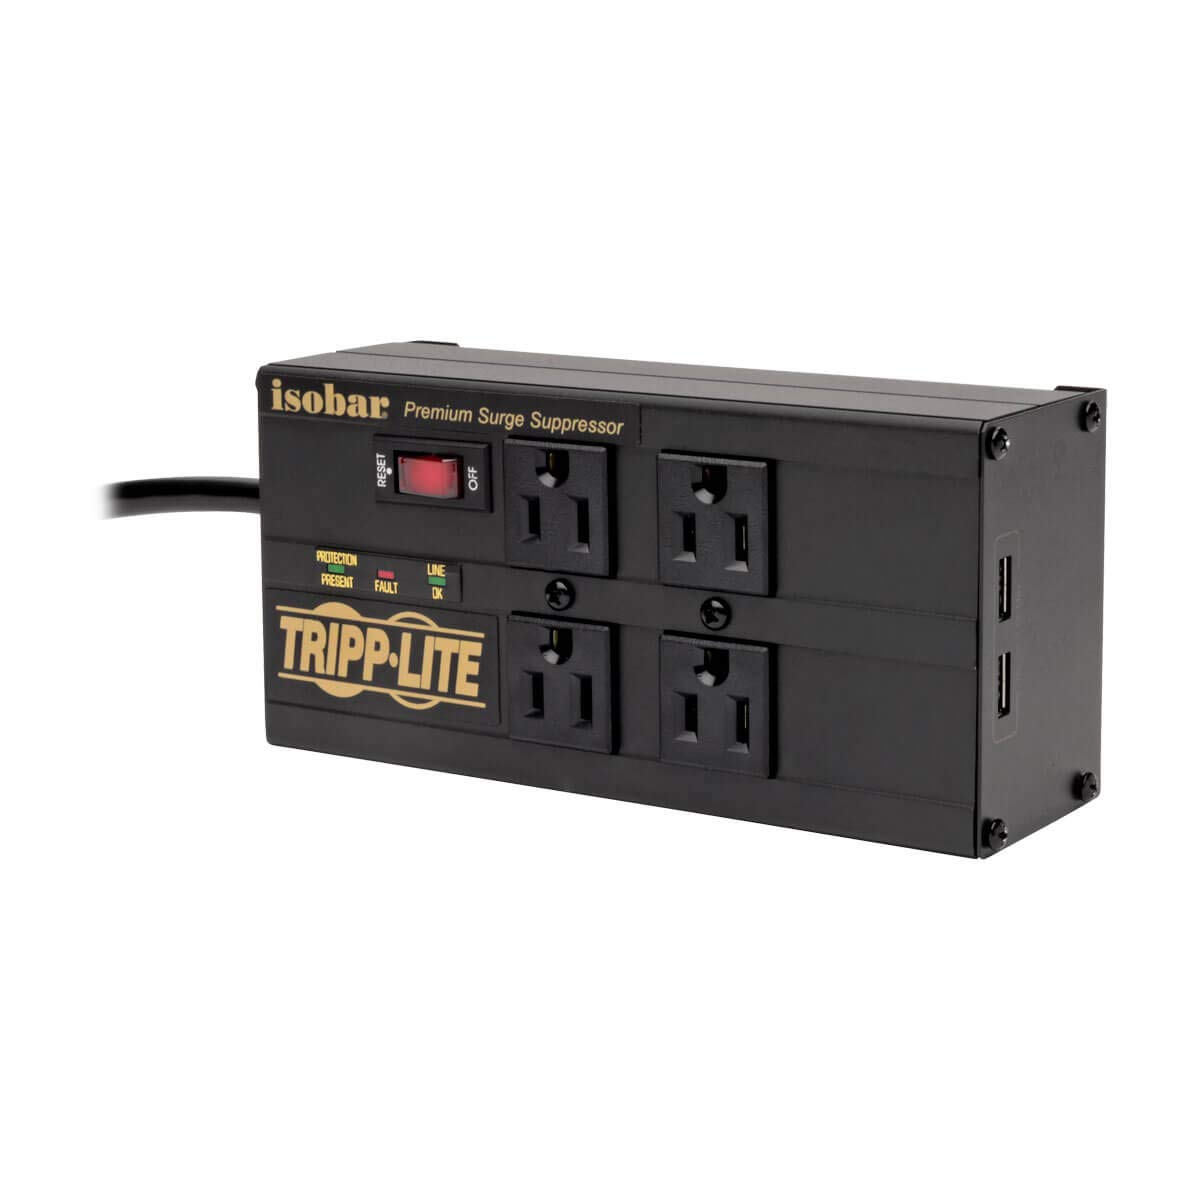 Tripp Lite Isobar 4 Outlet Surge Protector Power Strip with 2 USB Charging Ports, 8ft Long Cord, Right-Angle Plug, Metal, 3330 Joules, Lifetime Limited Warranty & $50K Insurance (IBAR4ULTRAUSBB)